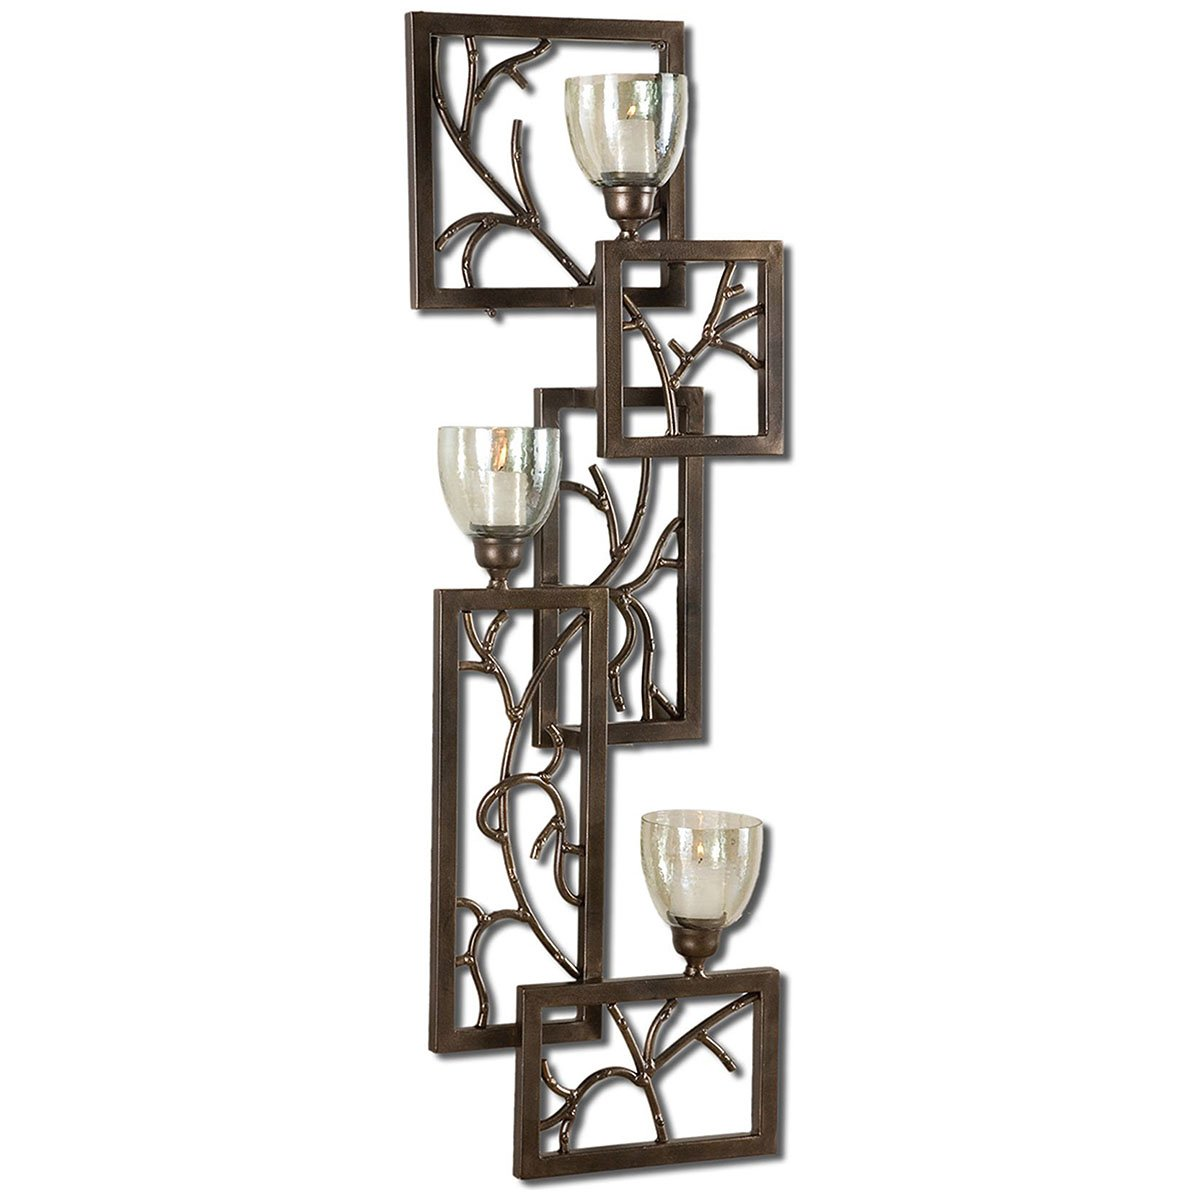 Amazon uttermost iron branches wall sconce 6 x 1425 x 42 amazon uttermost iron branches wall sconce 6 x 1425 x 42 dark bronze home kitchen amipublicfo Gallery